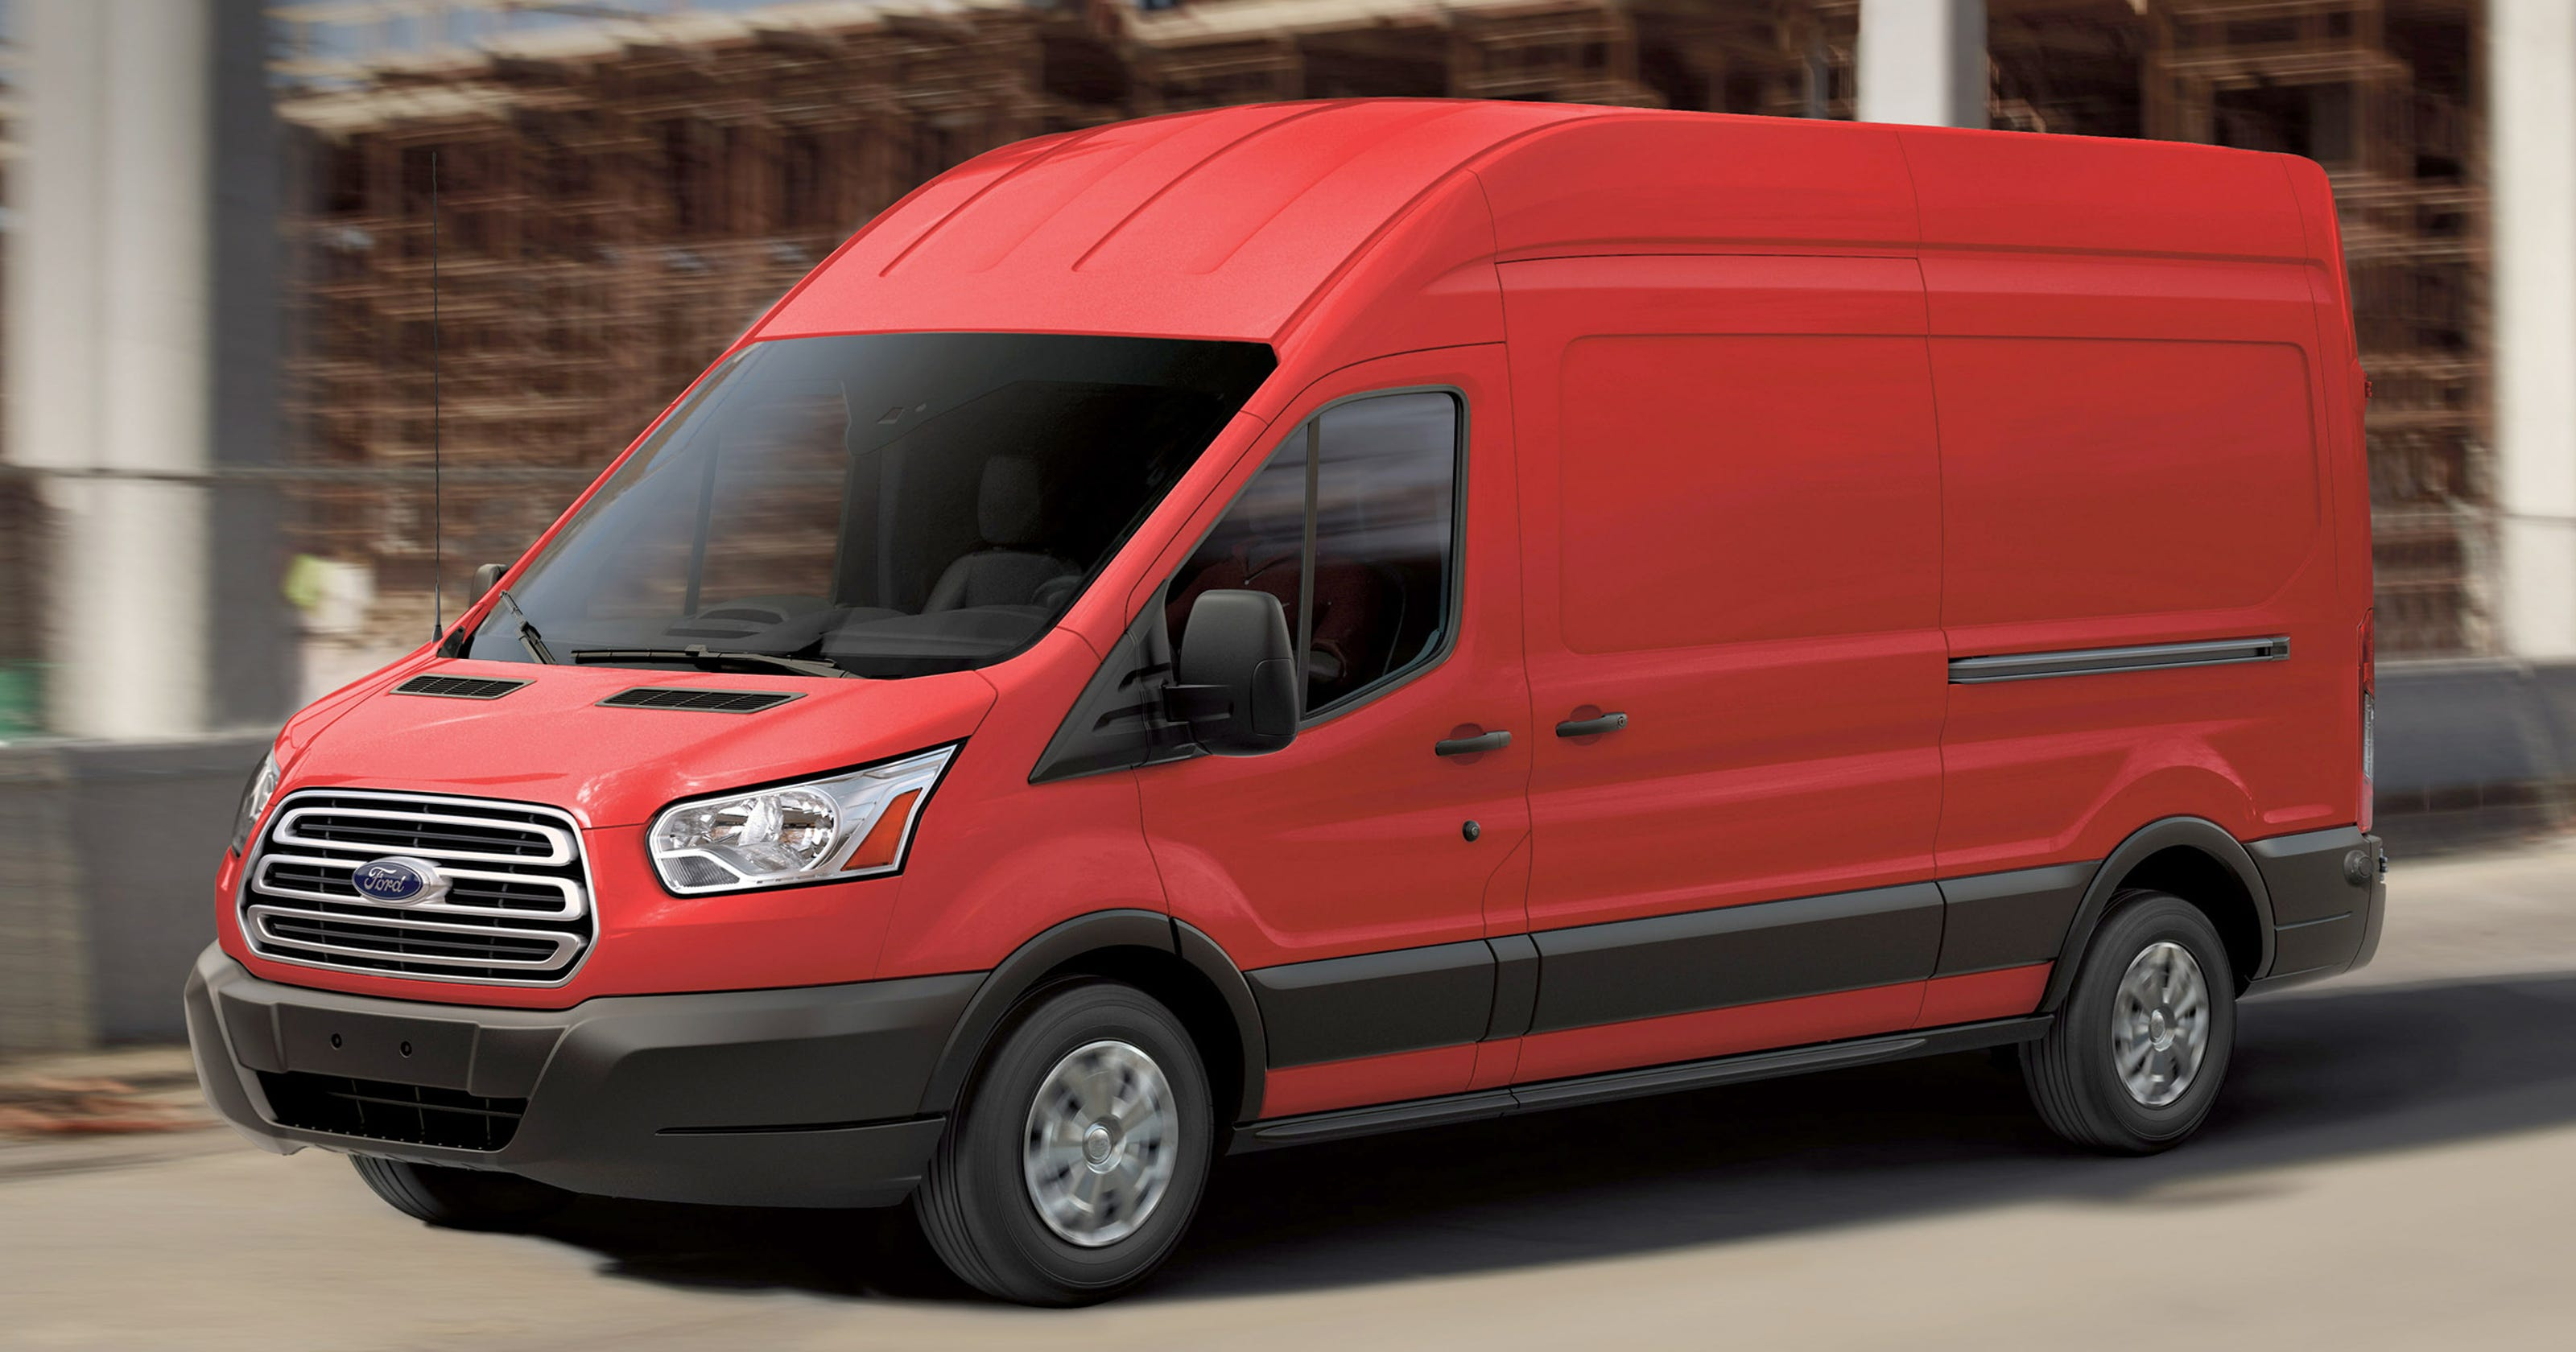 Ford Recalls Big Vans Wiring Issue Could Cause Fires Harness Fire Issues